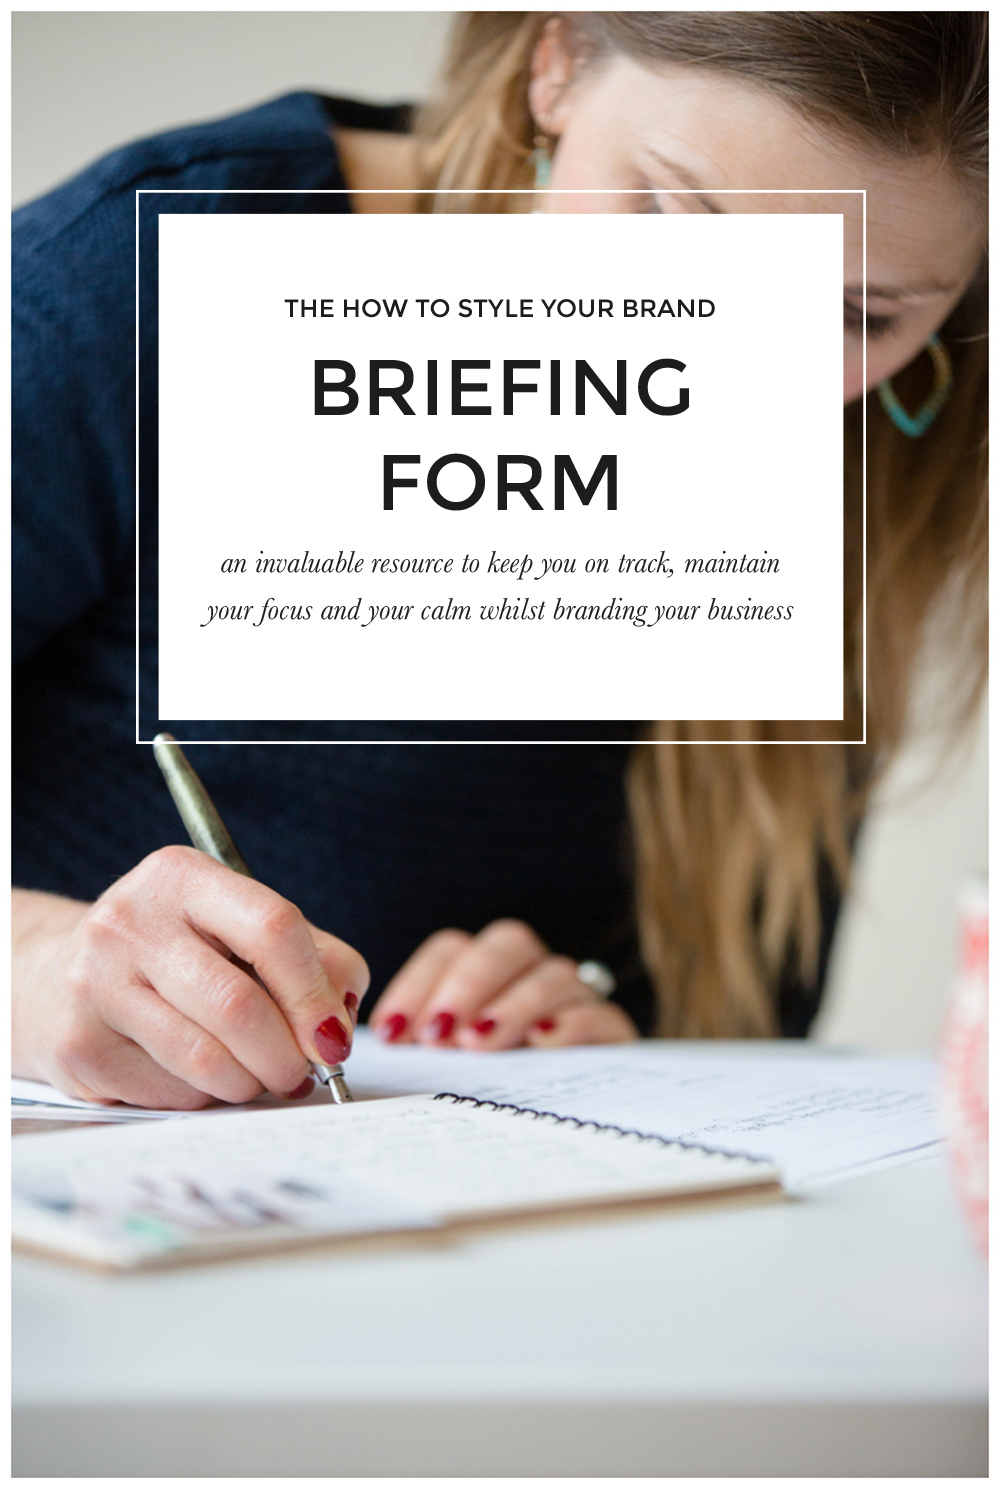 briefing-form-for-a-brand-styling-project